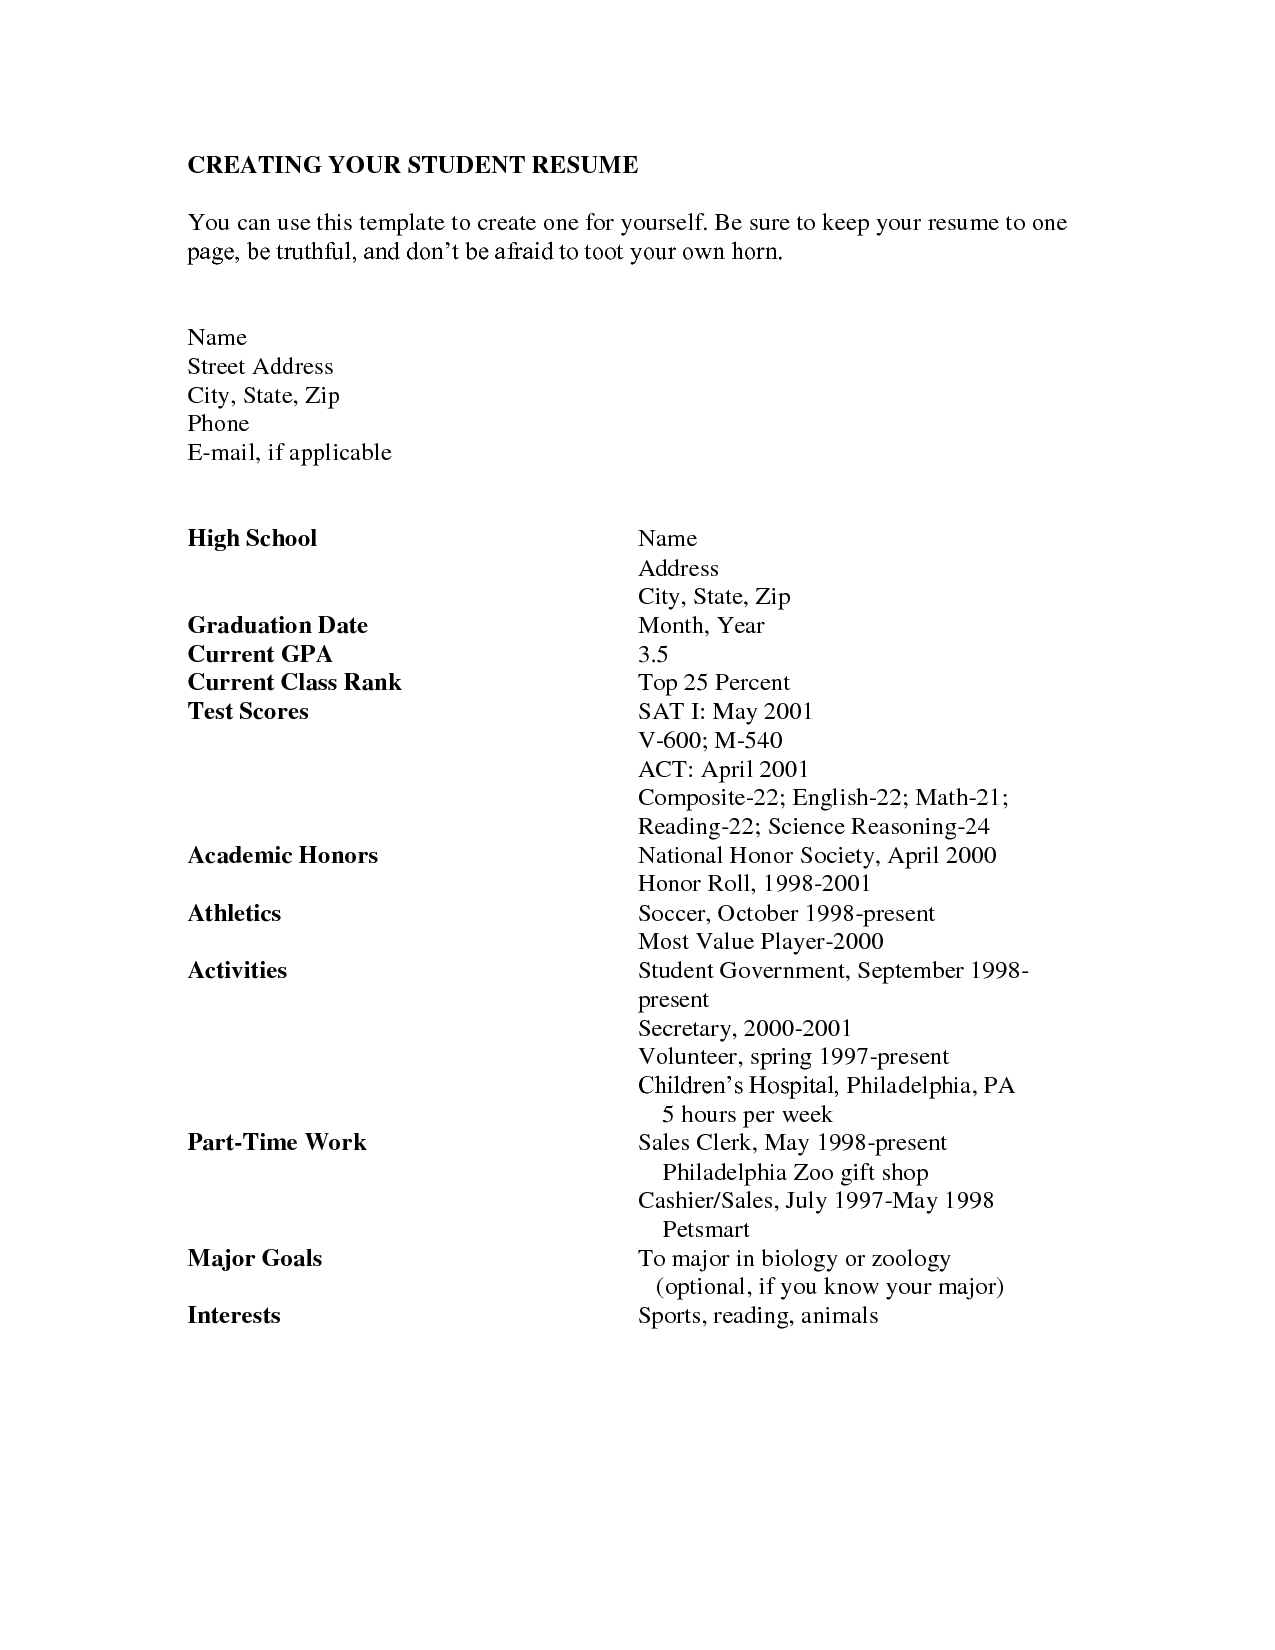 Academic Resume Sample High School Resume Academic Resume Builder Resume Templates  Http